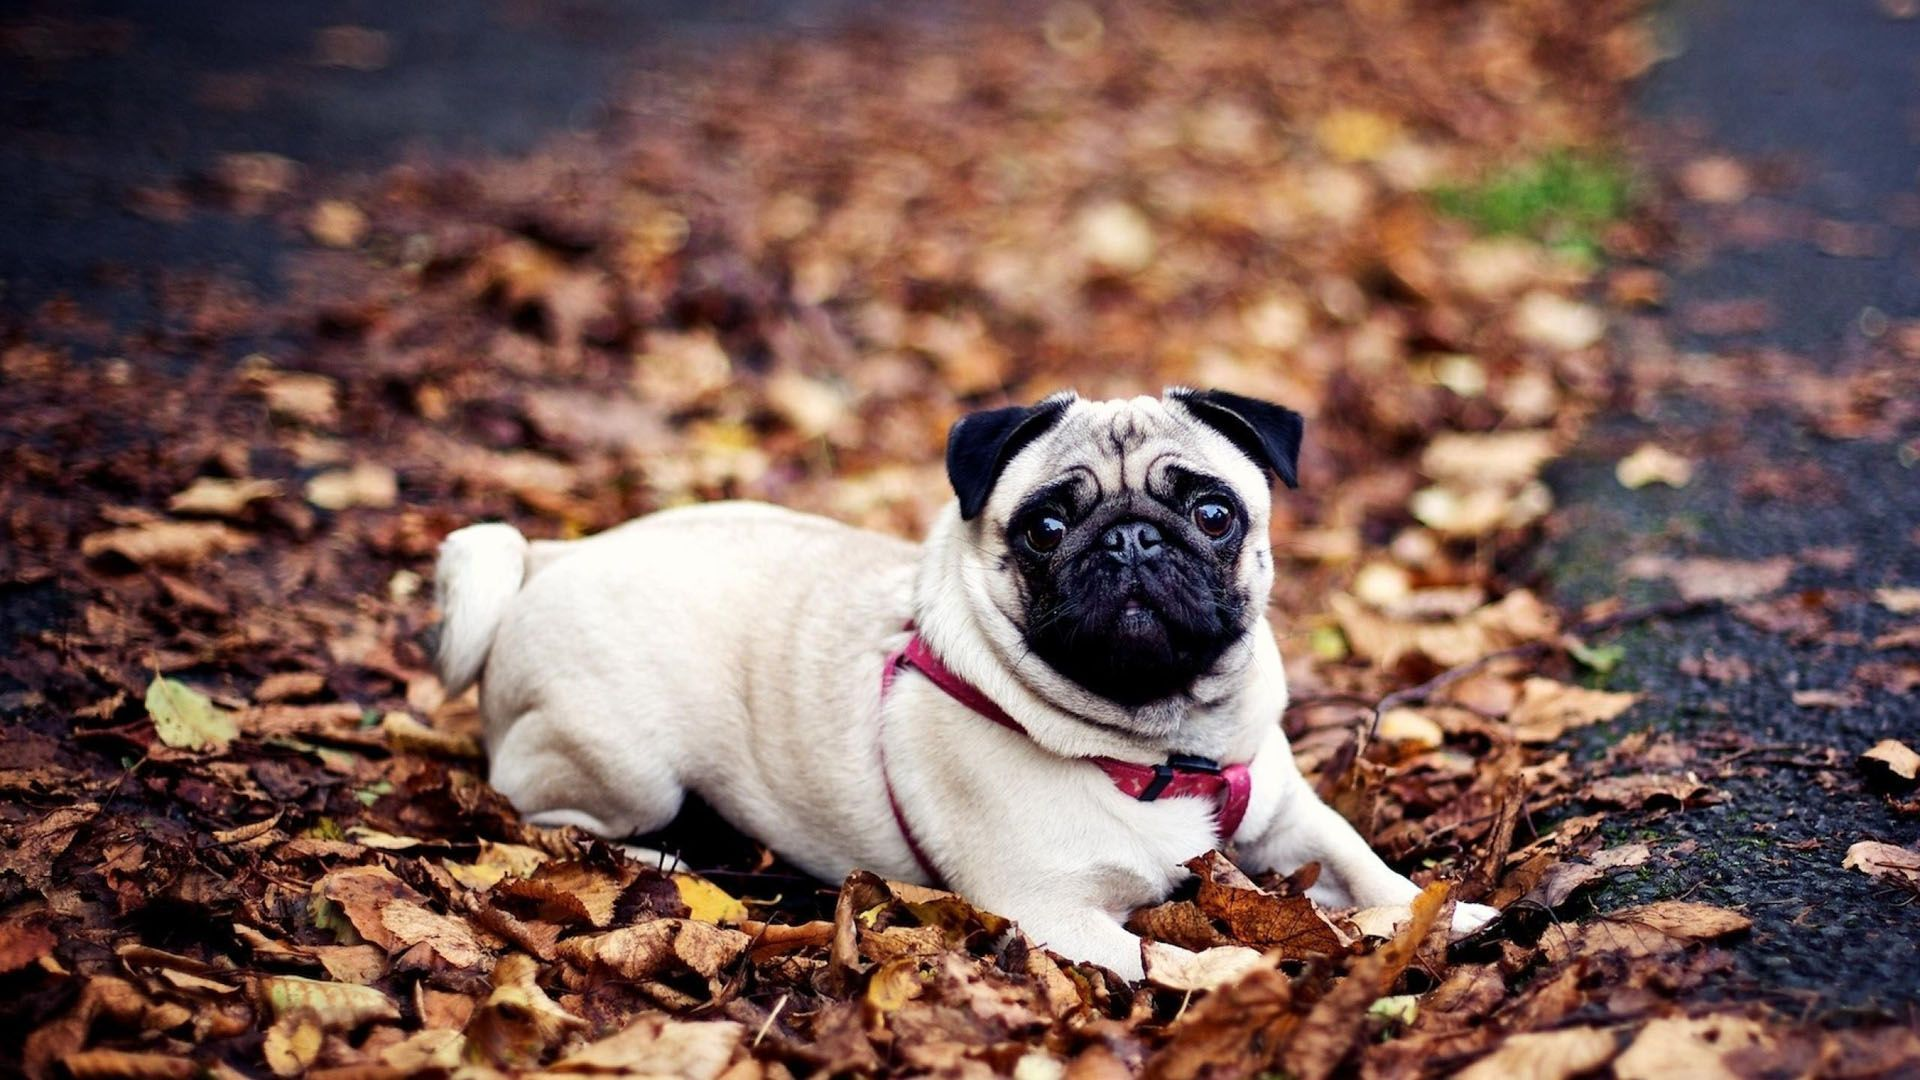 Pug Dog Wallpaper Free Download